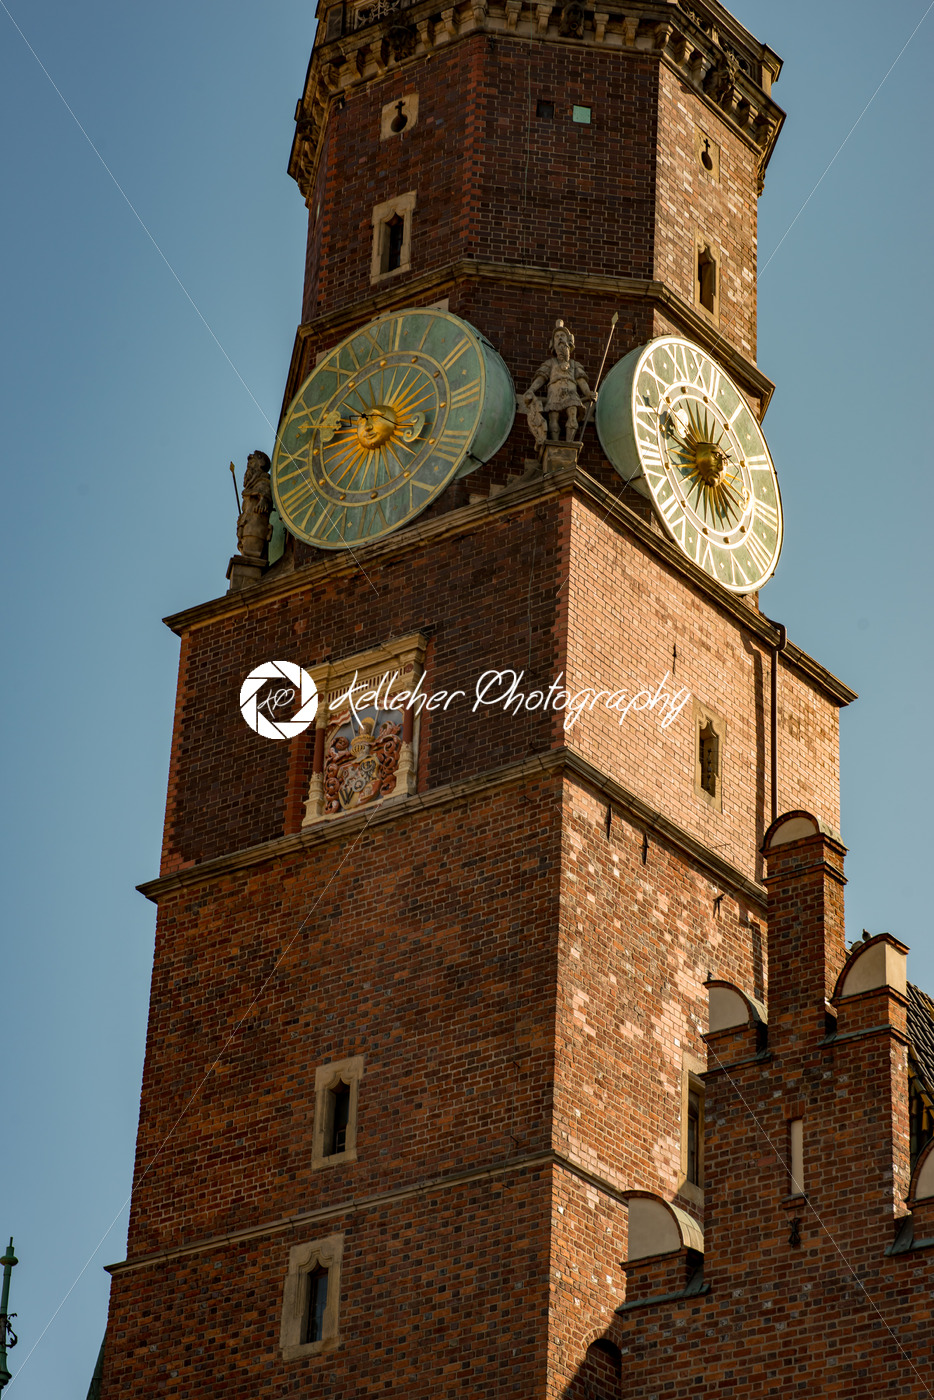 Wroclaw, Poland – March 9, 2018: Wroclaw Town Hall clock tower in morning in historic capital of Silesia, Poland, Europe. - Kelleher Photography Store